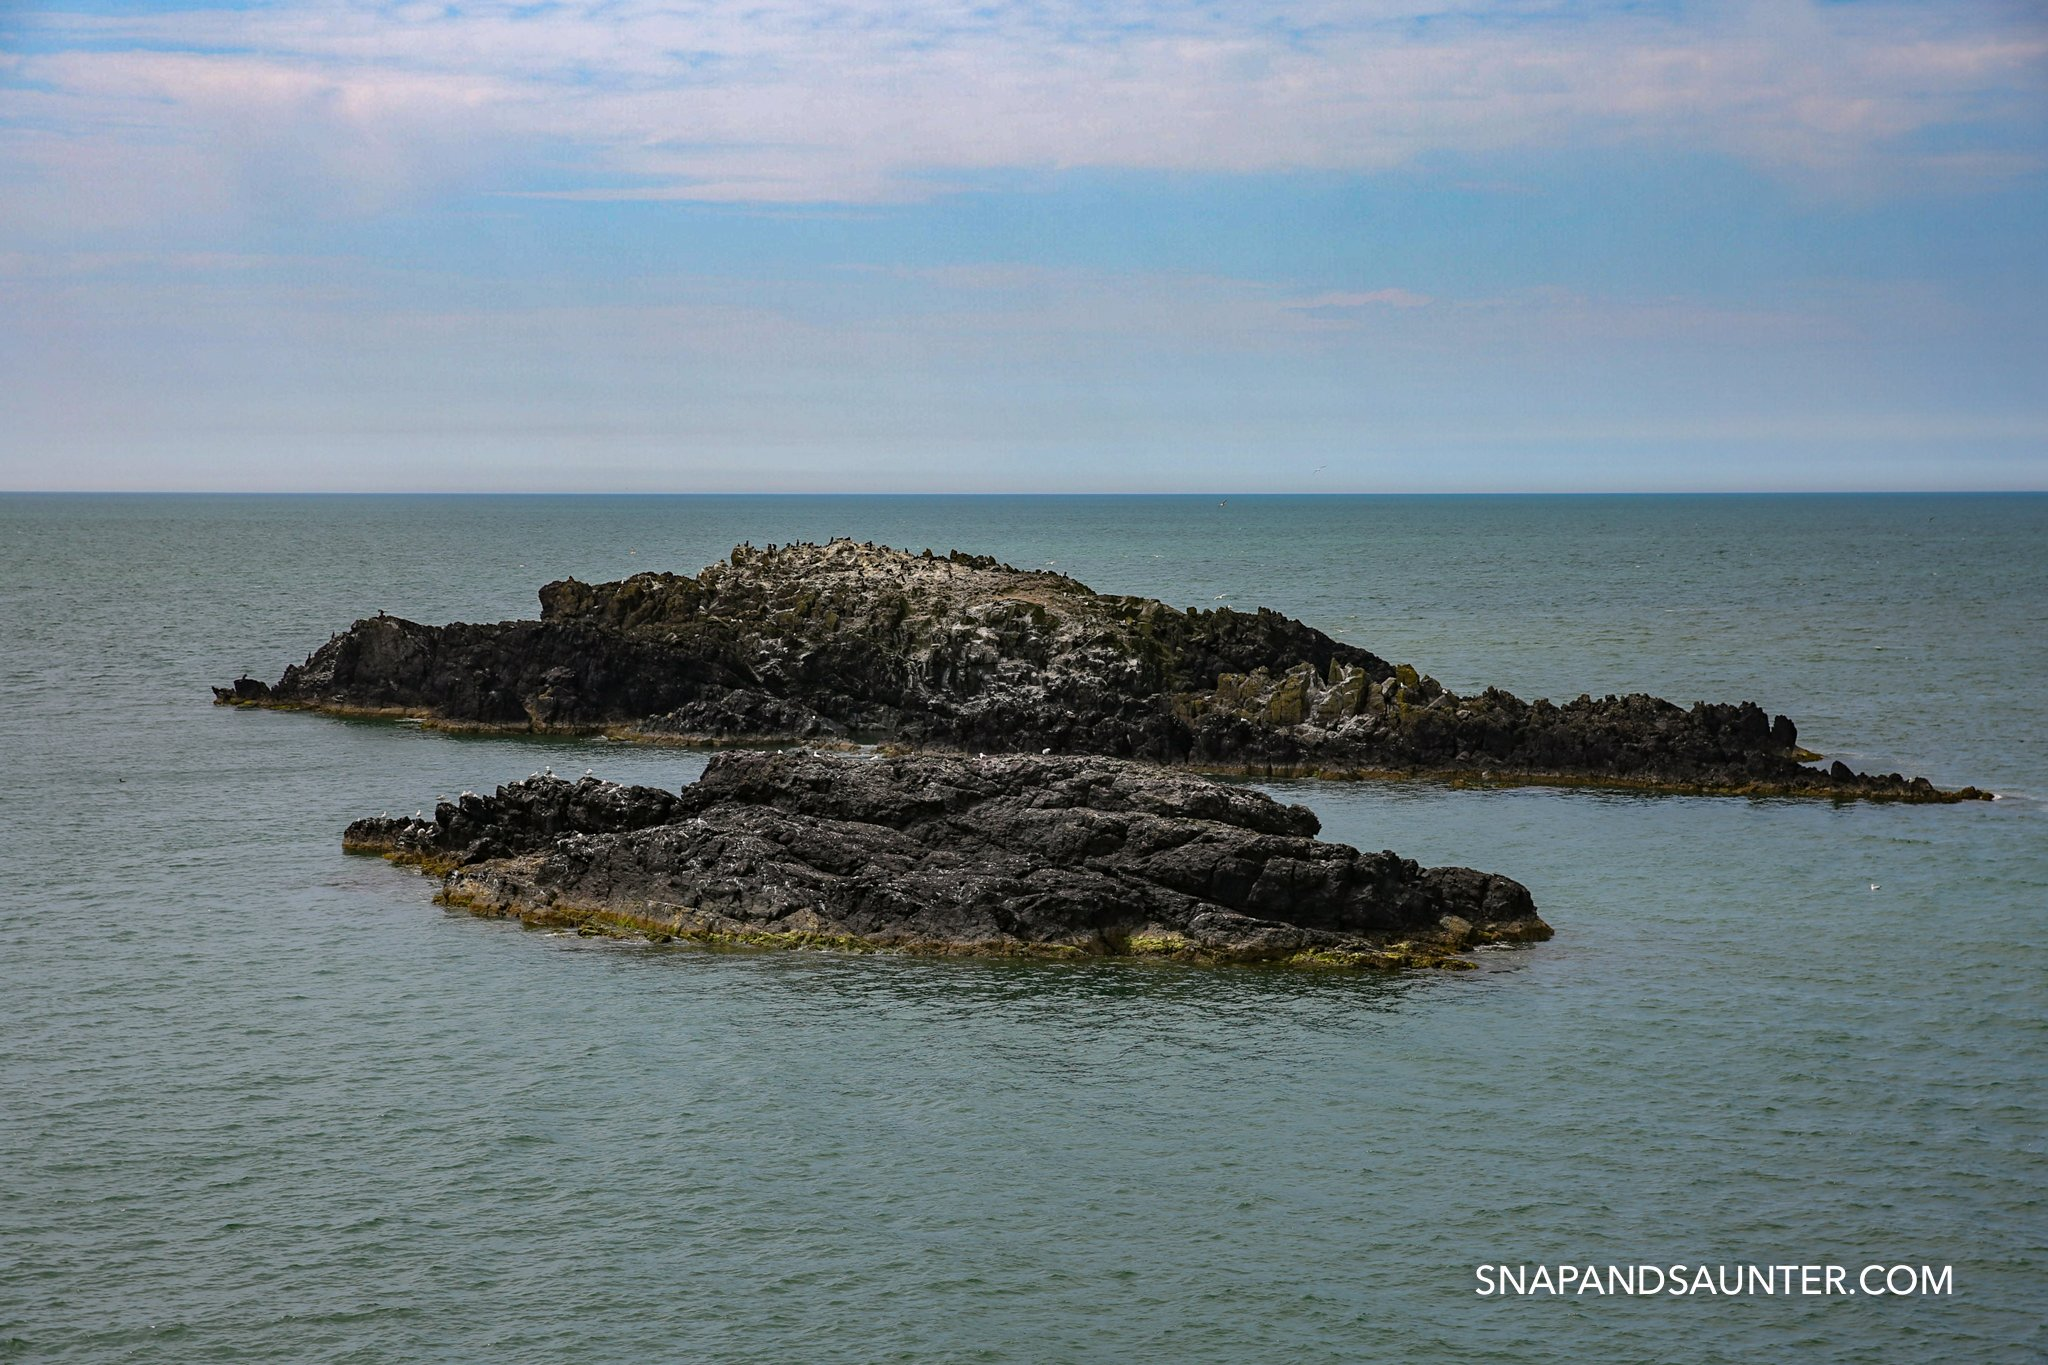 Two littles islets on Llandwyn Island in Anglesey